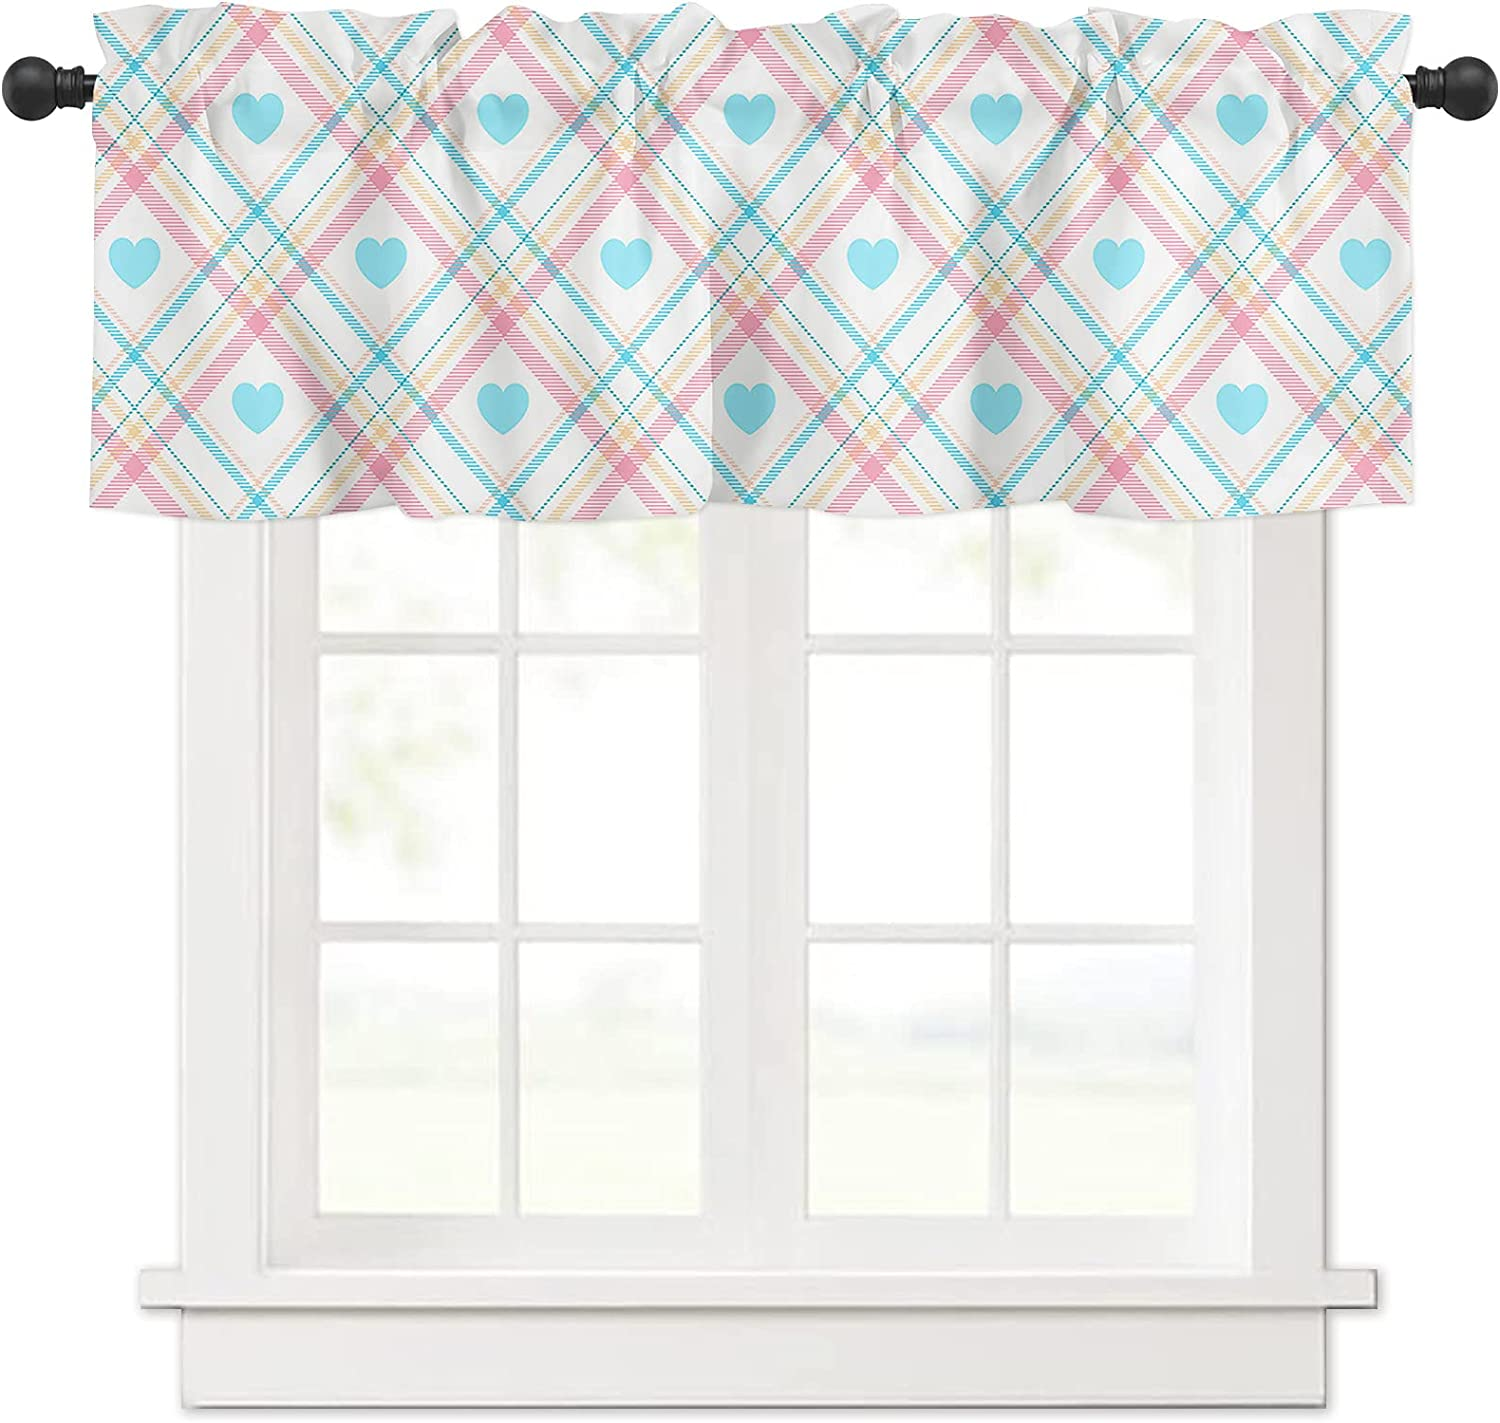 Blue Love Heart Pink Lines Windows Treatmen Valances Curtain for Max 67% OFF Cheap mail order specialty store